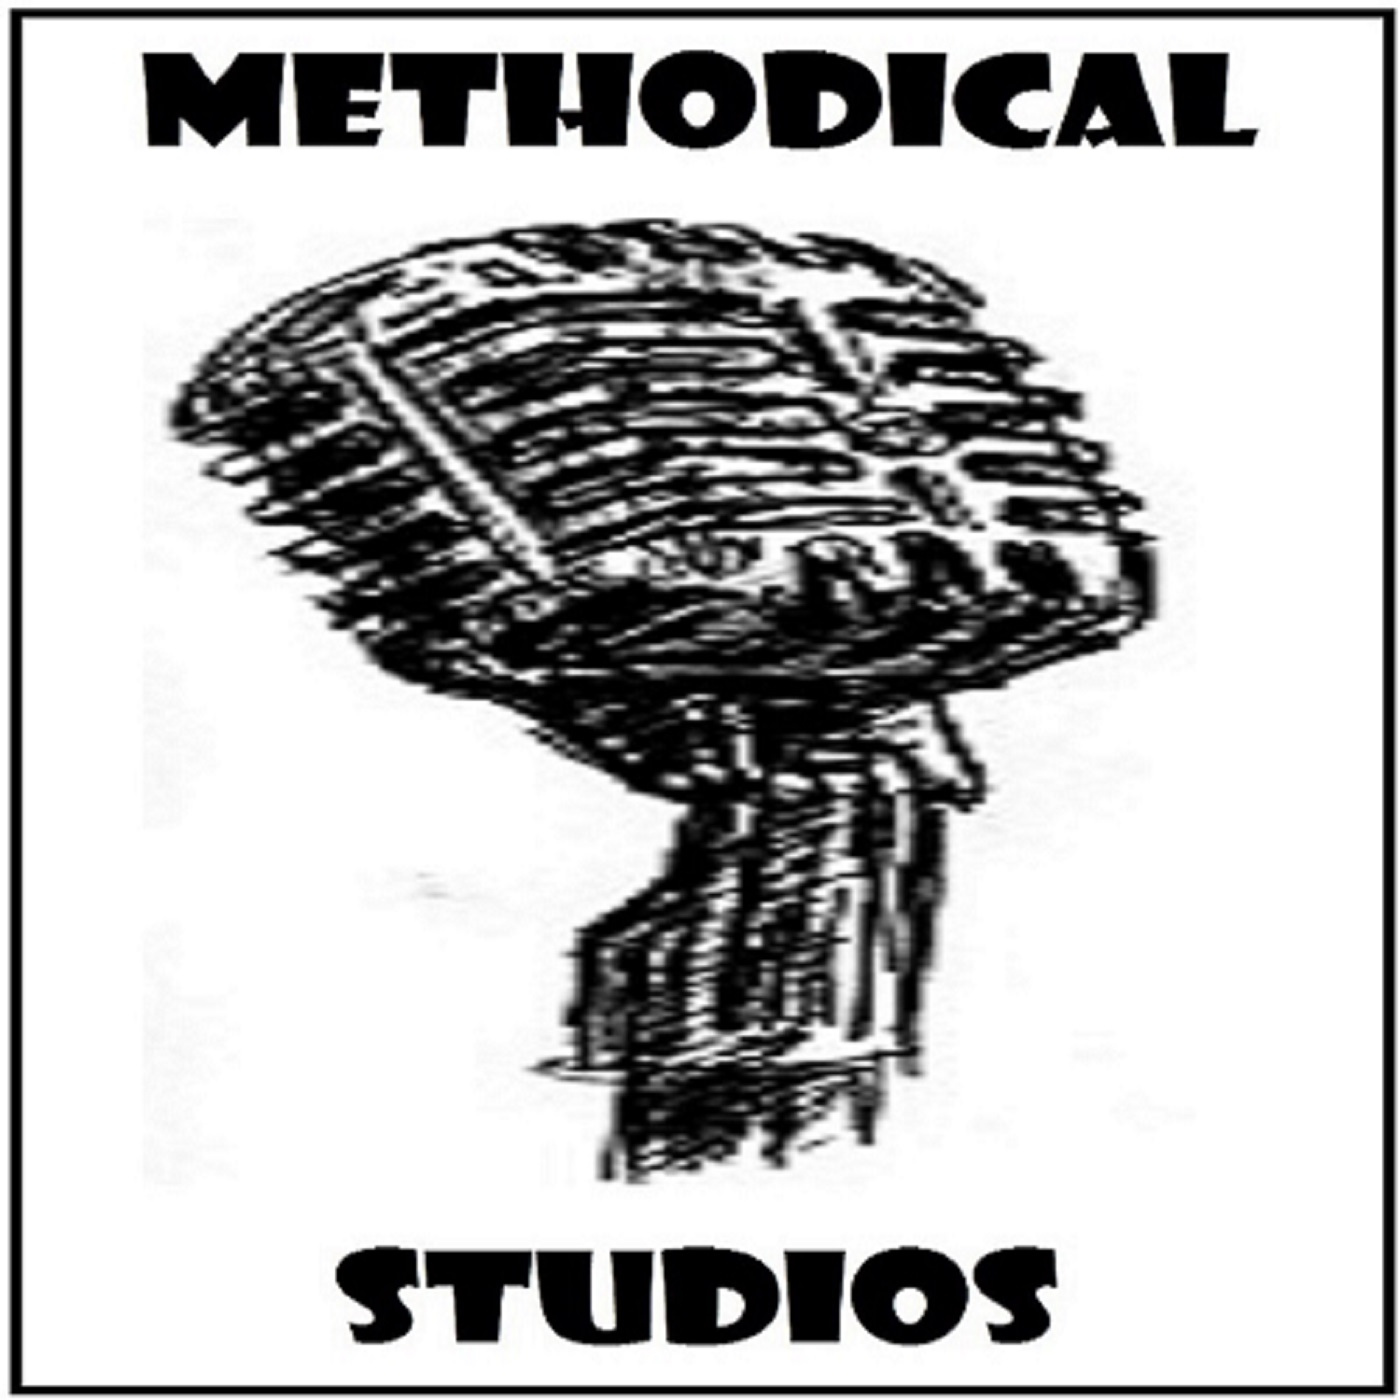 Methodical Studios